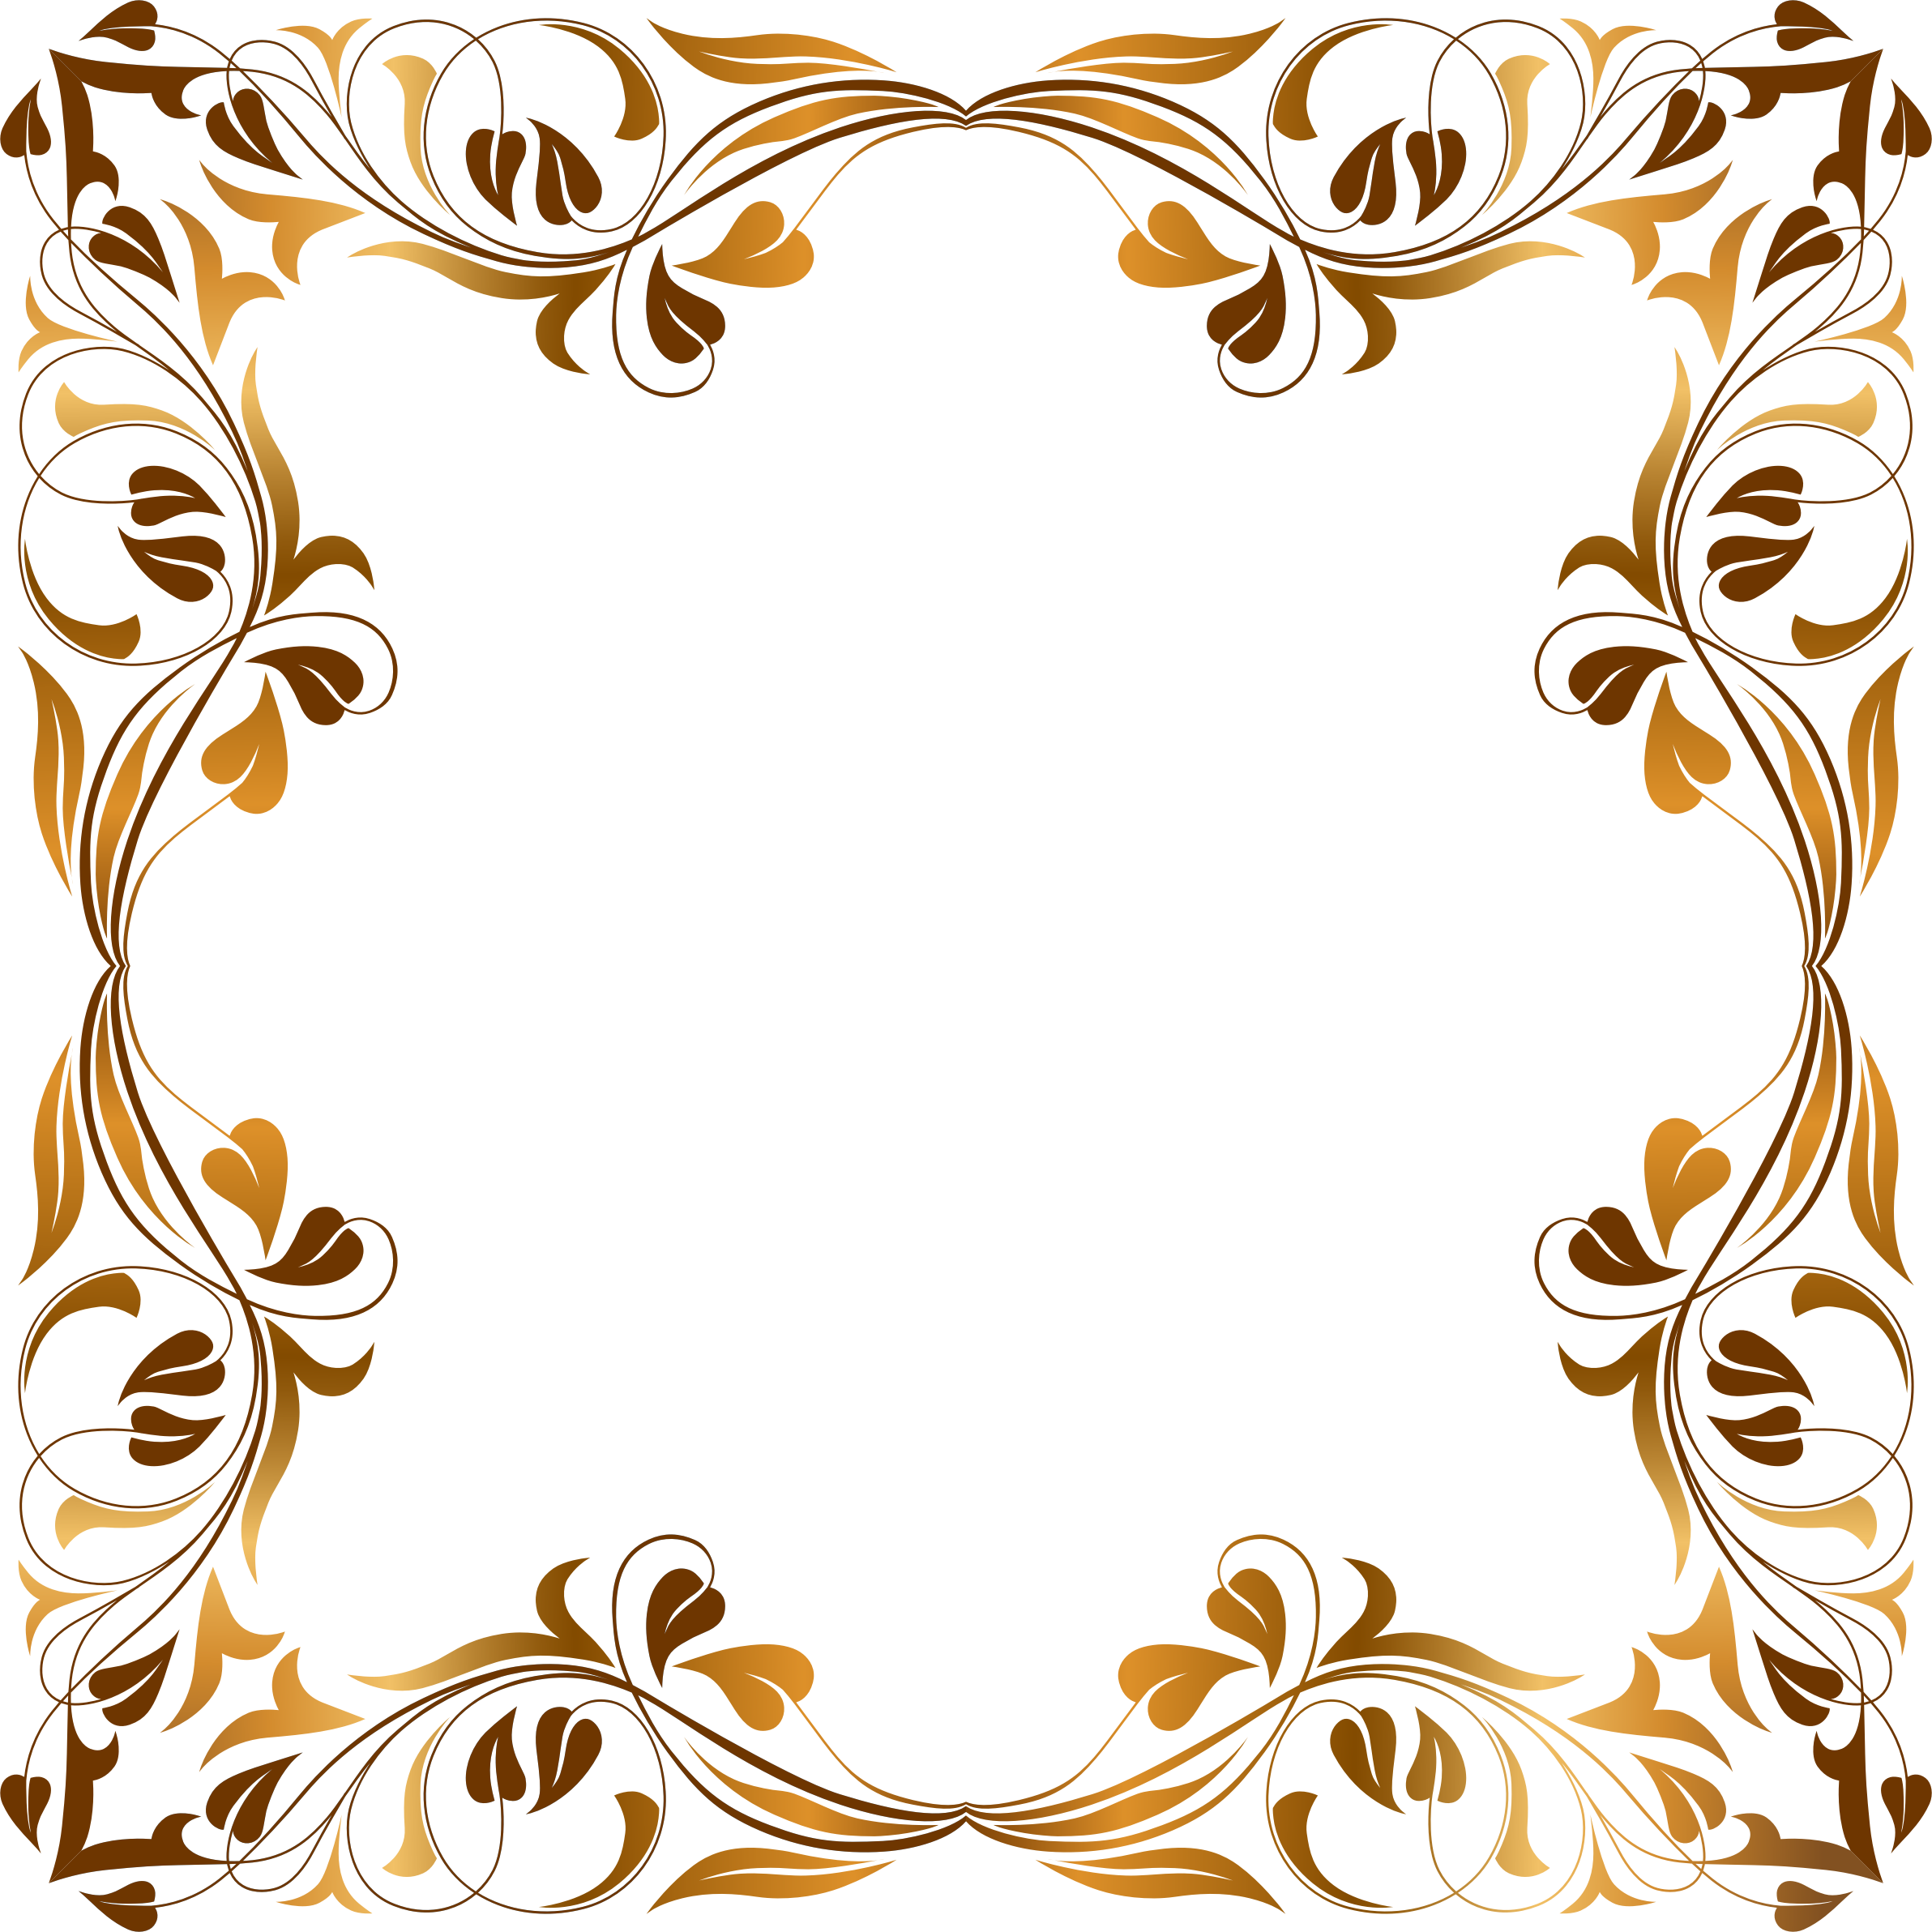 Floral Flourish Frame 6 by GDJ